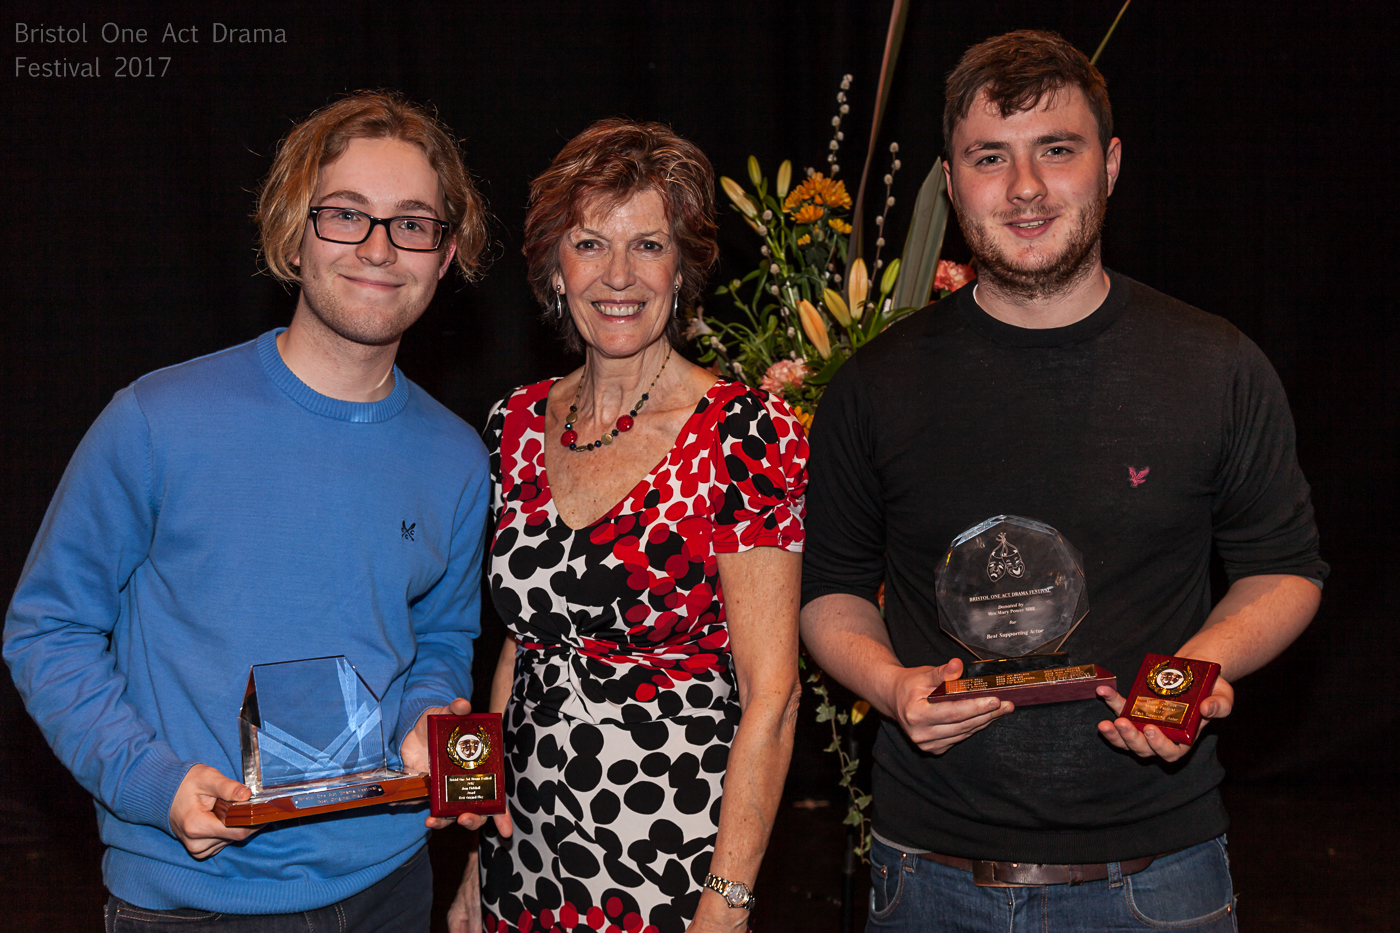 UWE Drama Soc. - Best Supporting Performance & Best Original Play